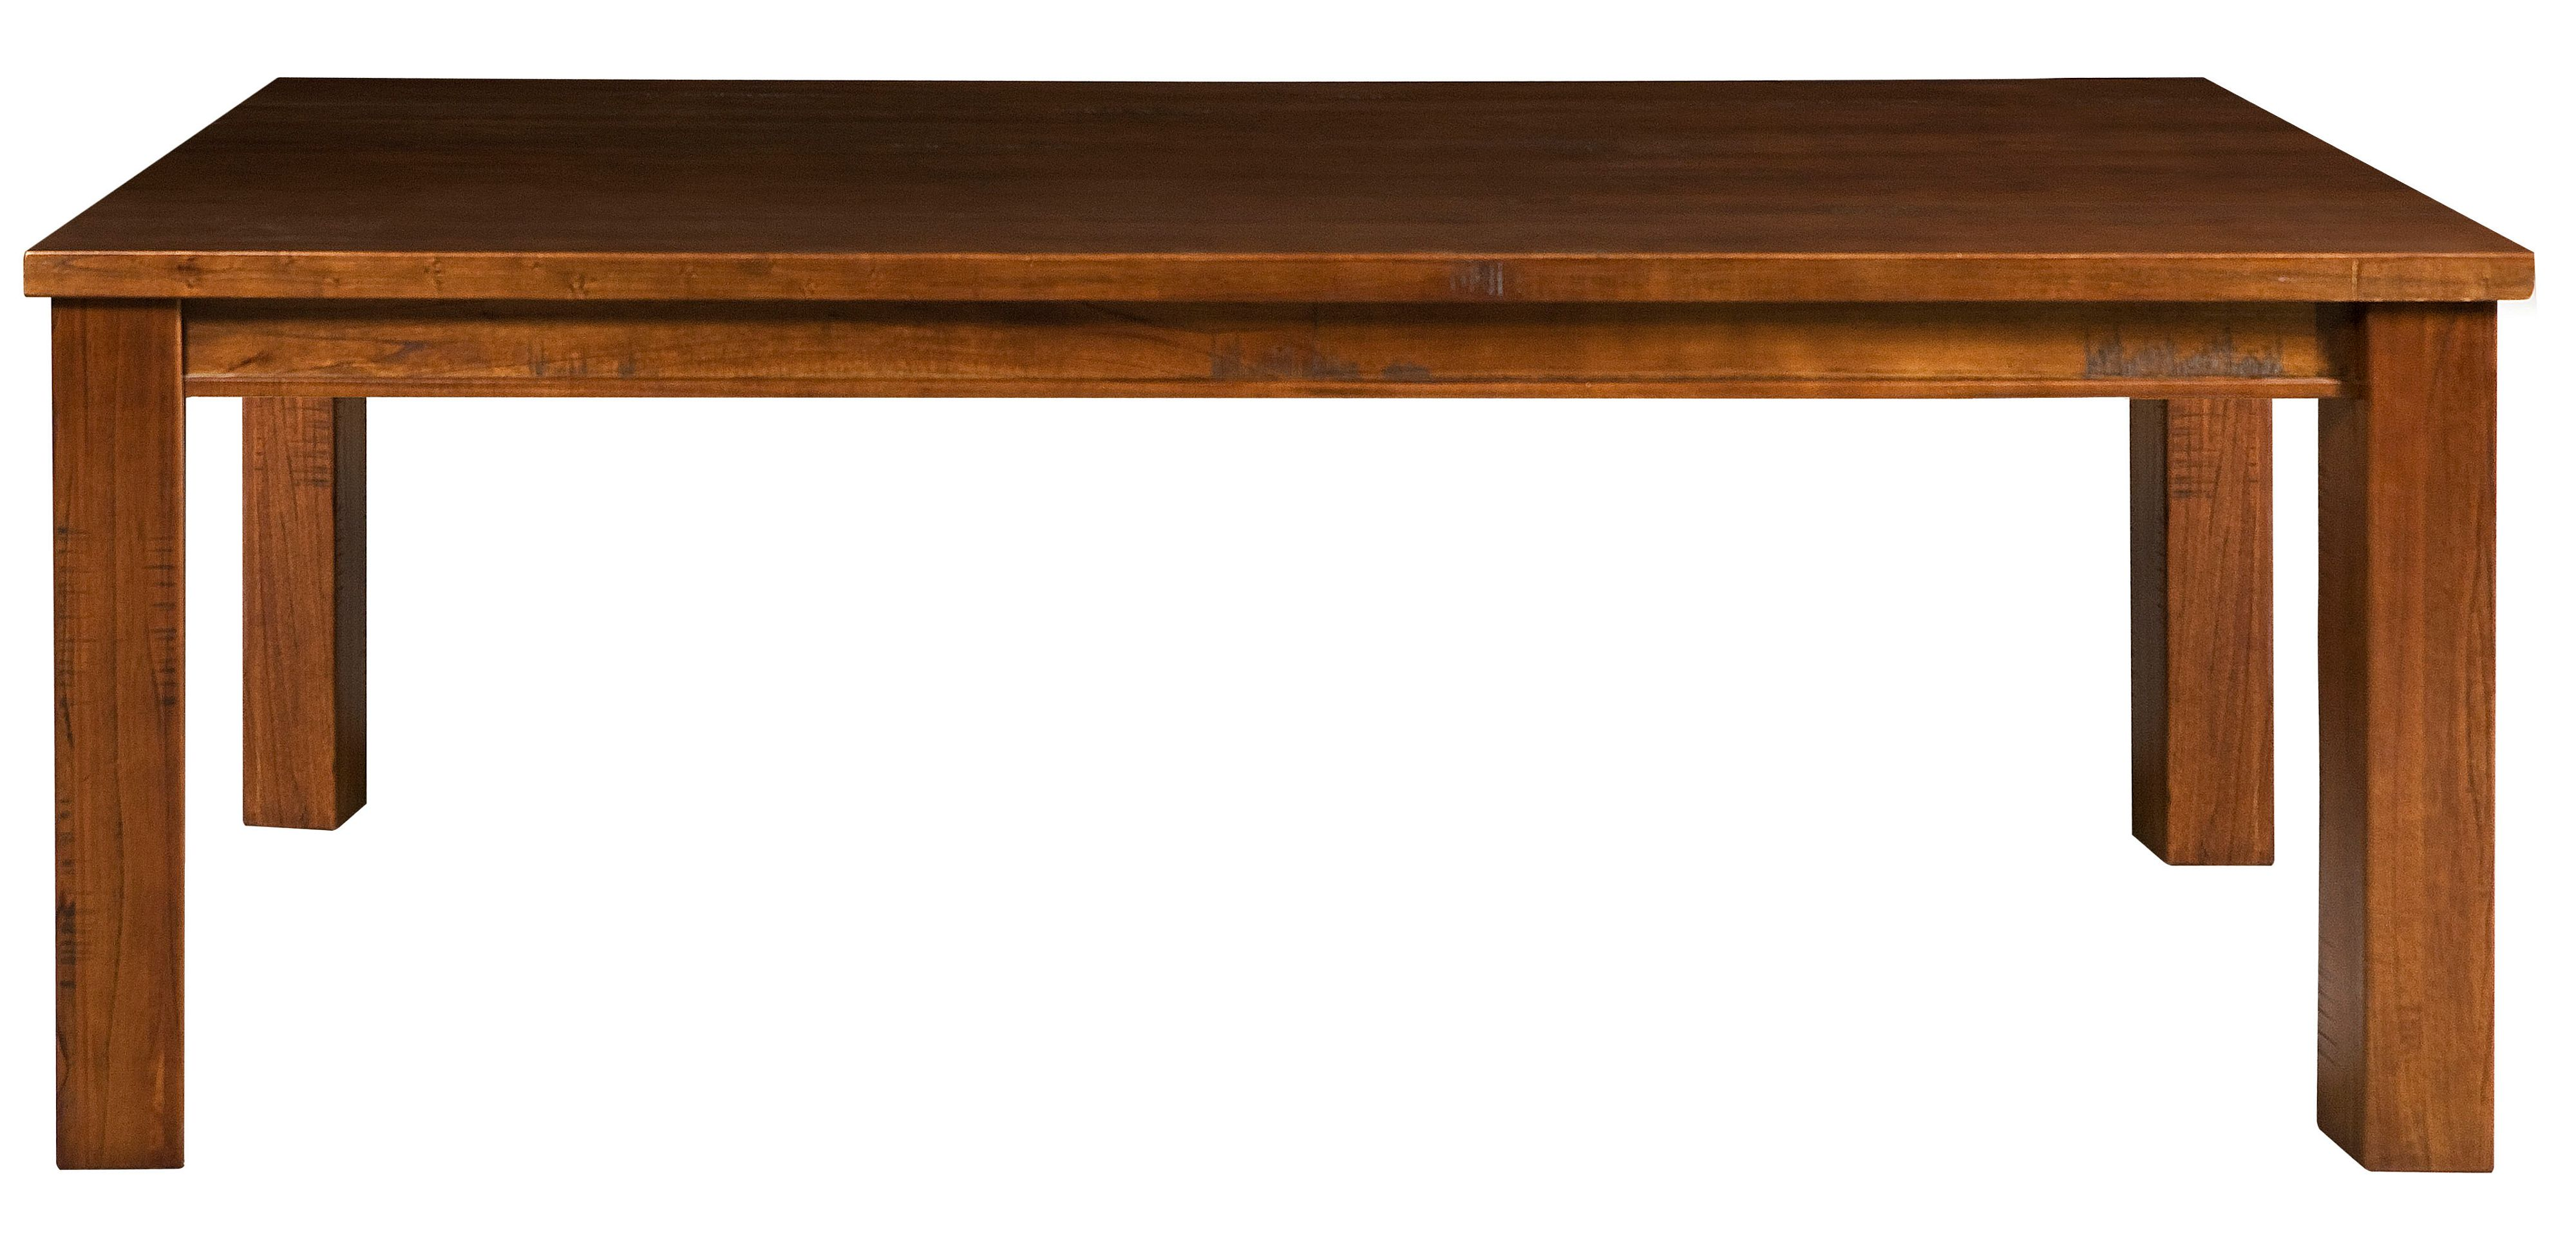 linea dining tables : I1572826045120110718 from www.comparestoreprices.co.uk size 4000 x 1918 jpeg 550kB